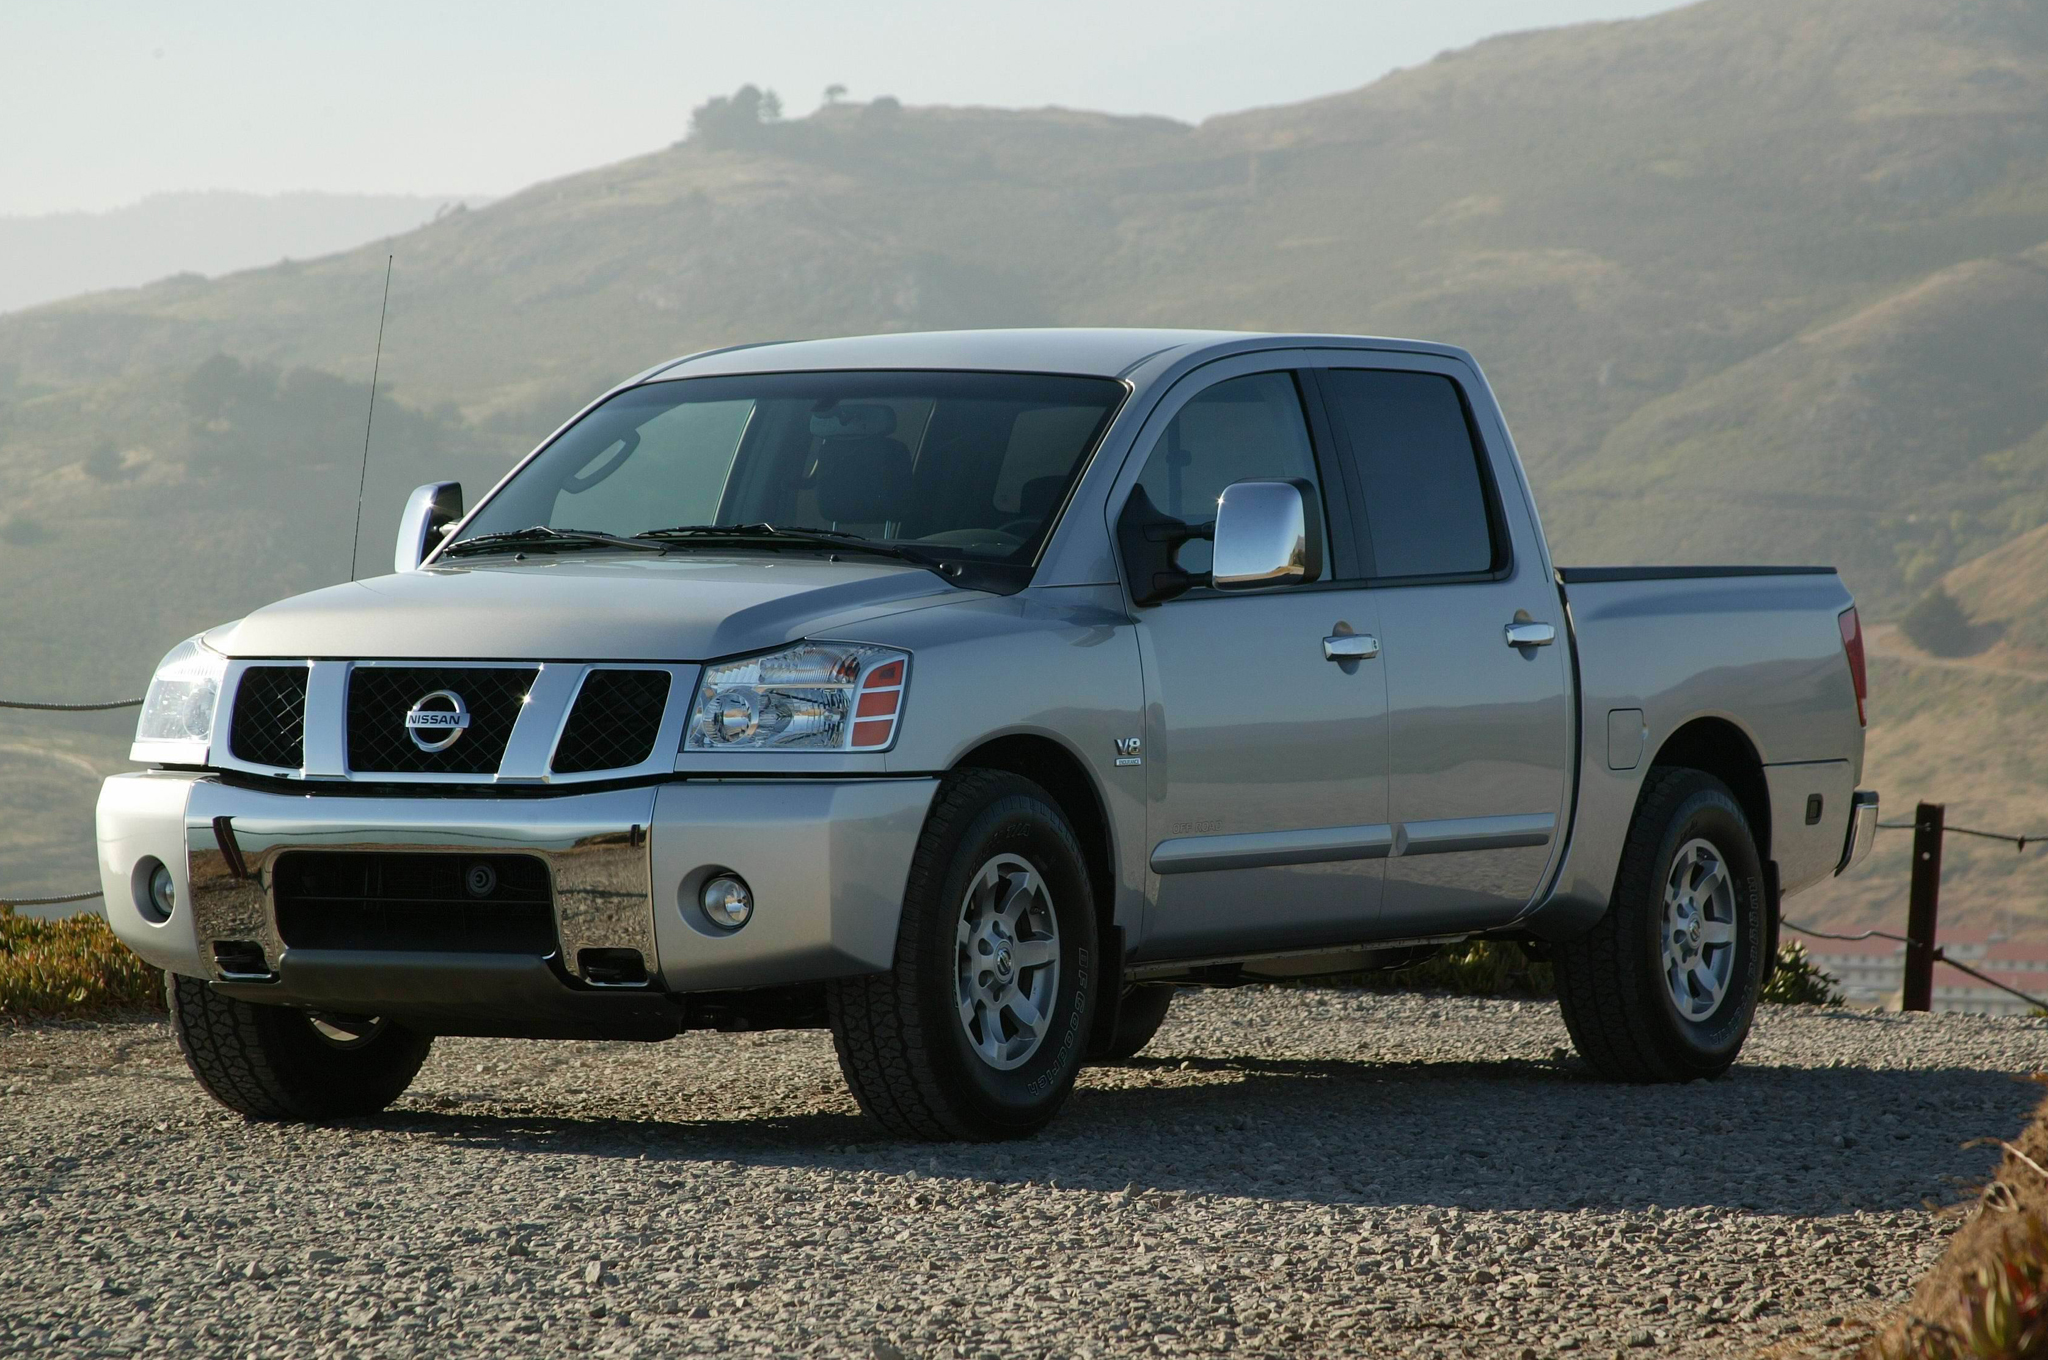 2007 Nissan Titan P0430 Code - Truck Trend Garage Photo